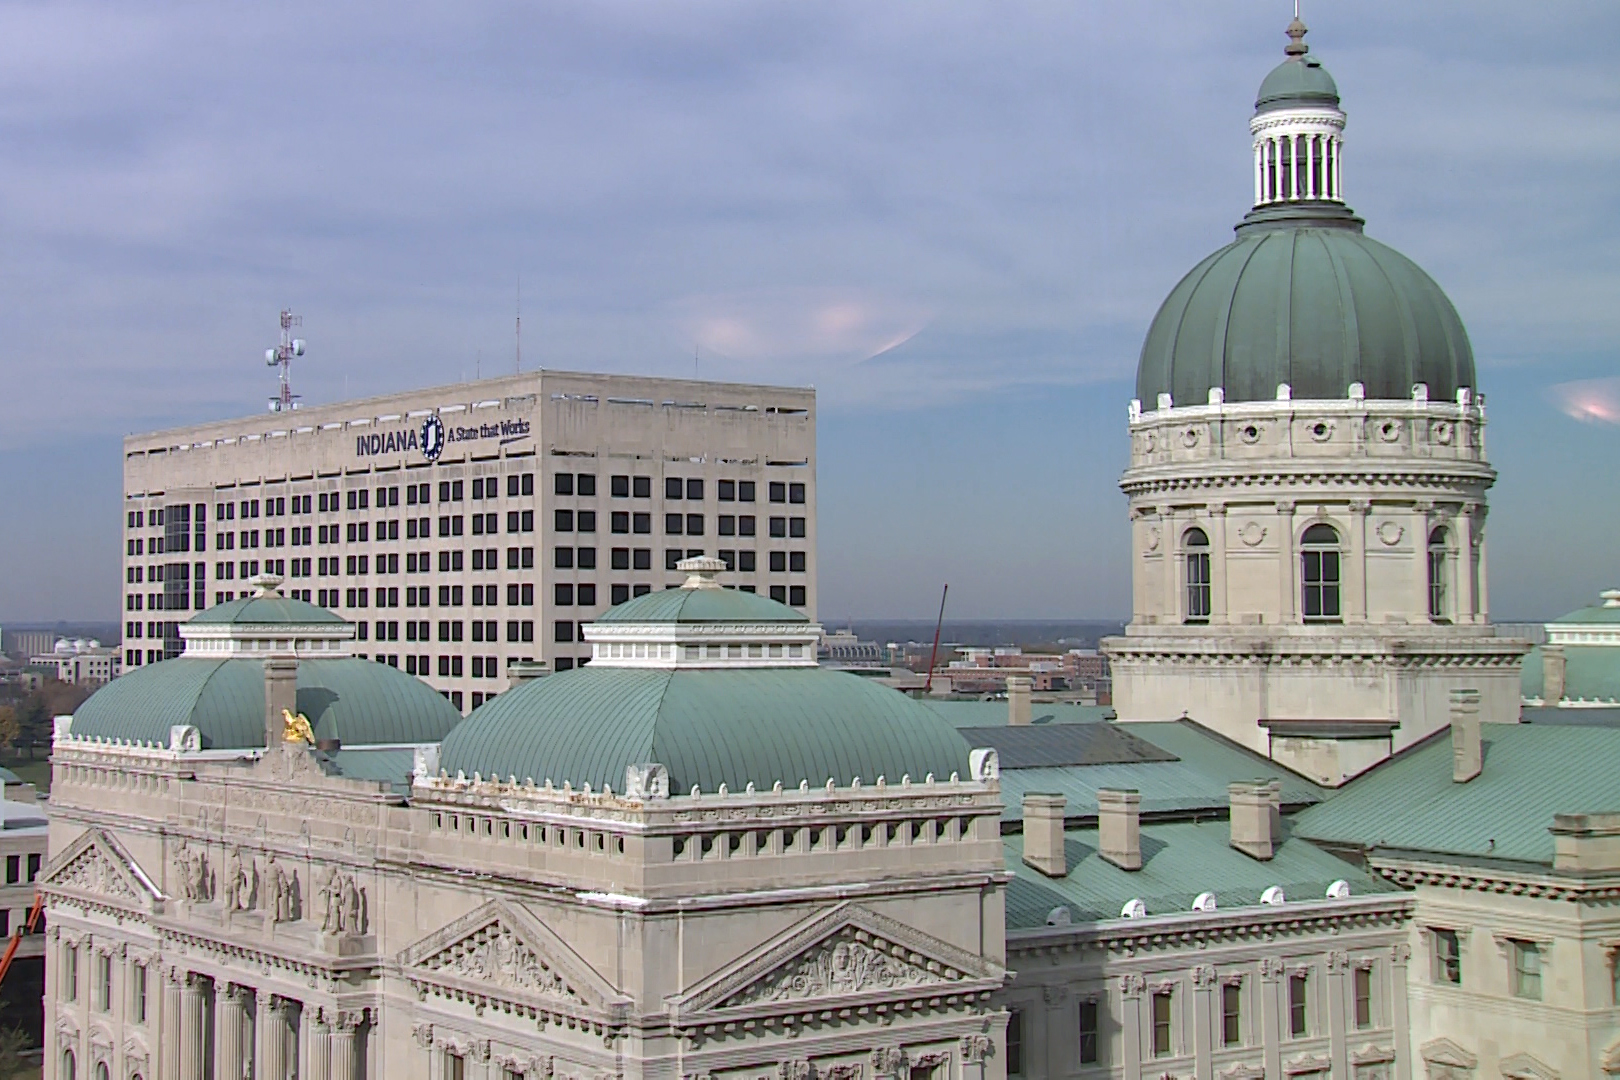 a-different-view-of-the-statehouse_steve-burns.jpg